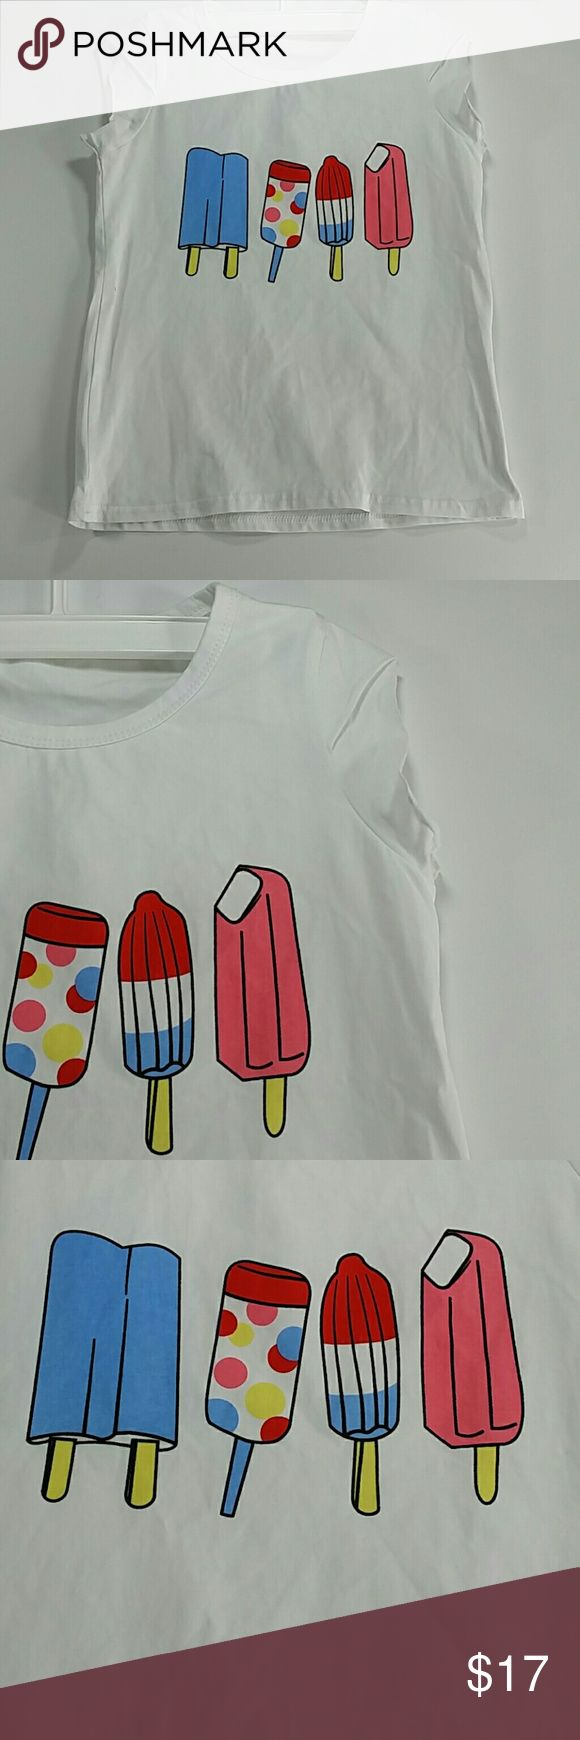 White Ice cream Tee shirt. Kid Adorable white tee shirt with a cute ice cream design.  This item is brand new and never used. No tags. Shirts & Tops Tees - Short Sleeve